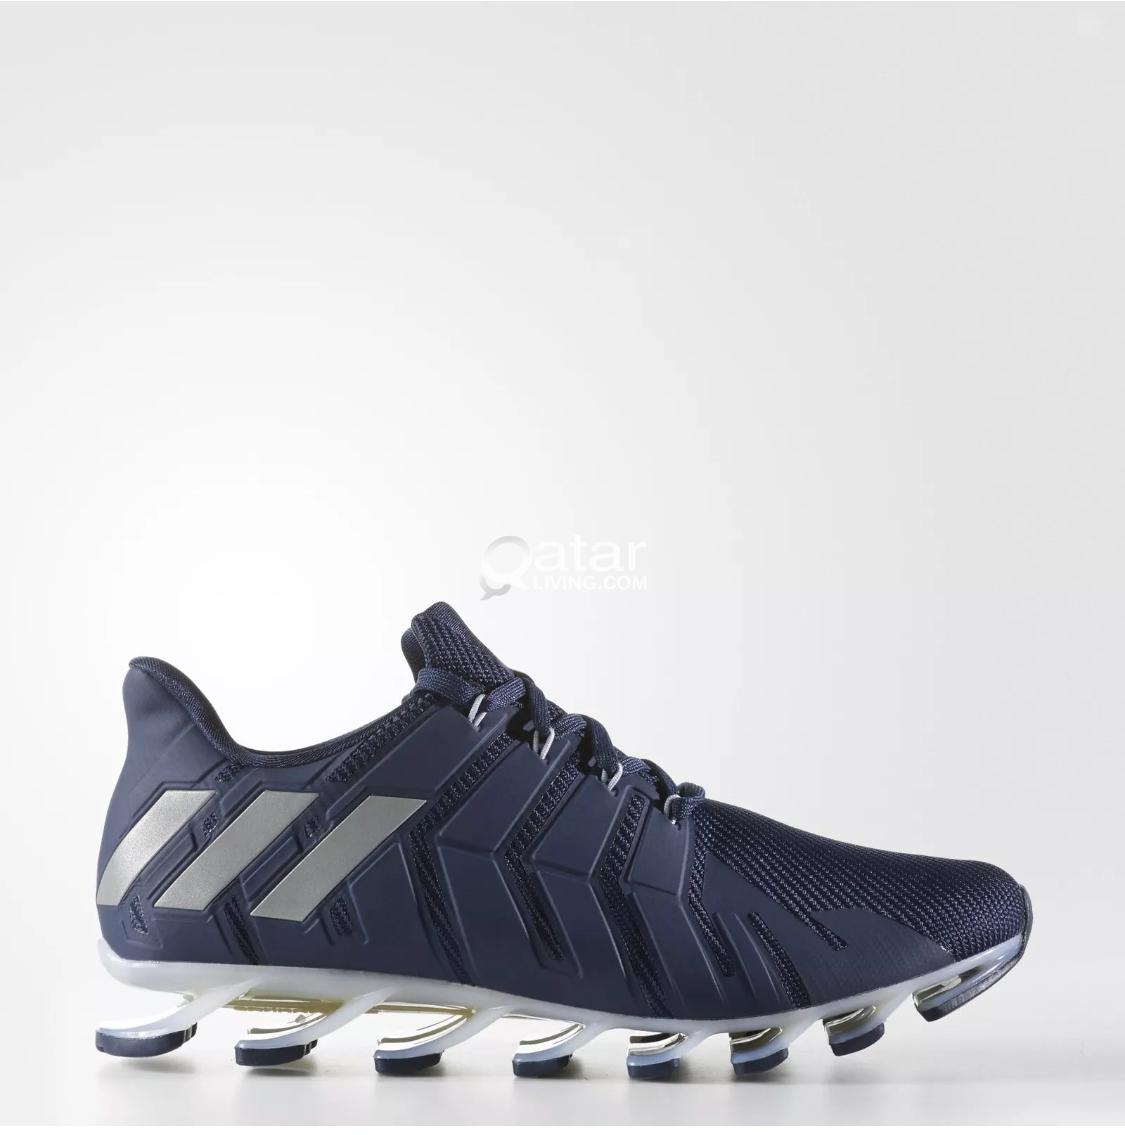 26975502420 ... where can i buy information. adidas springblade pro . 88b20 60d3a